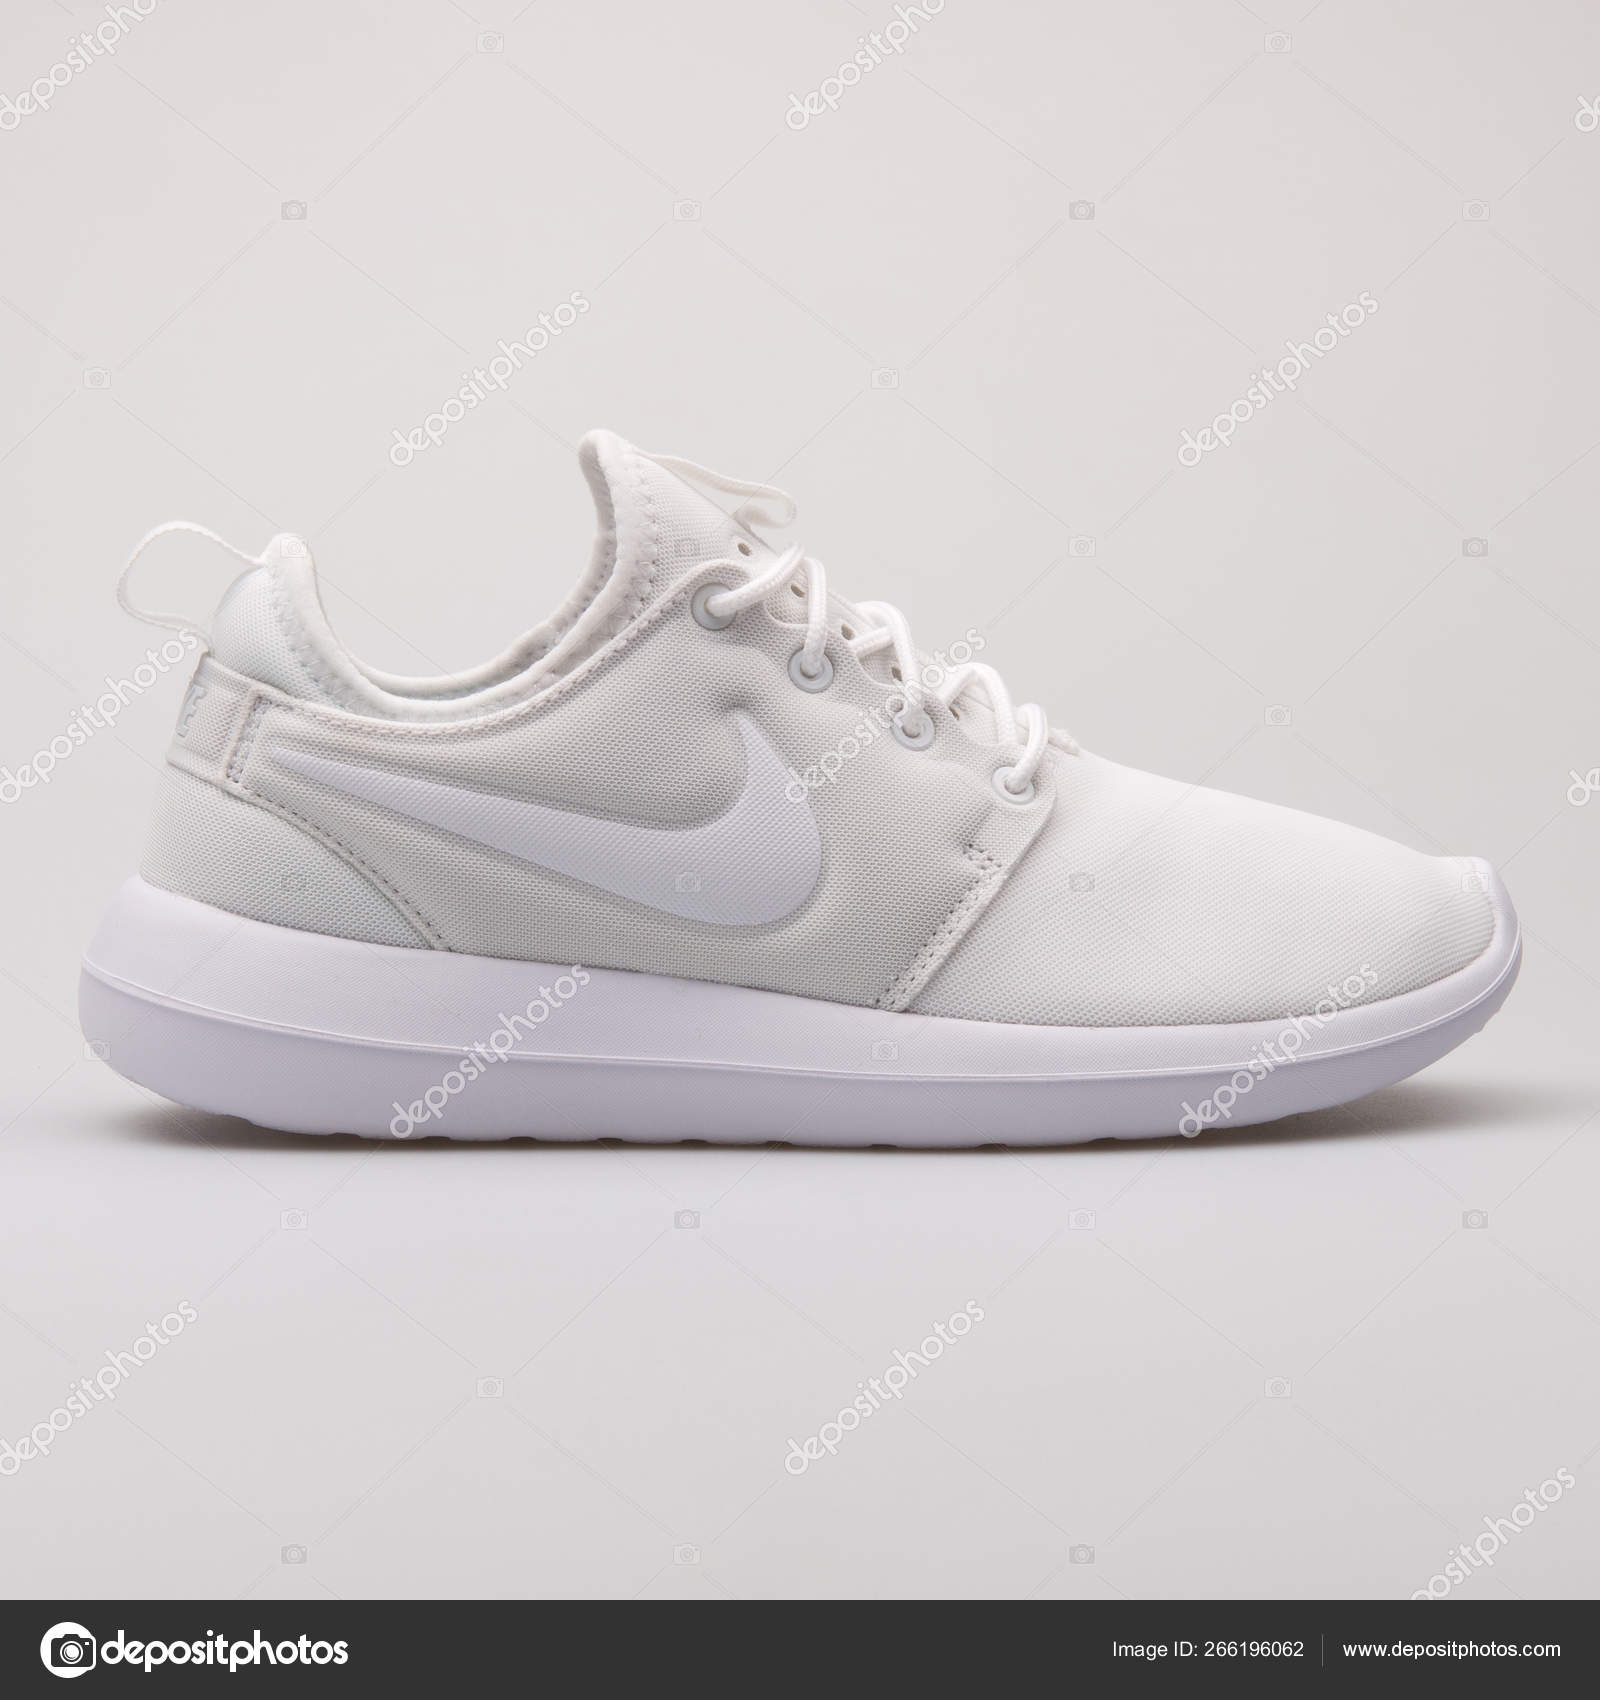 Nacarado surco Guiño  Nike Roshe Two white sneaker – Stock Editorial Photo © xMarshallfilms  #266196062